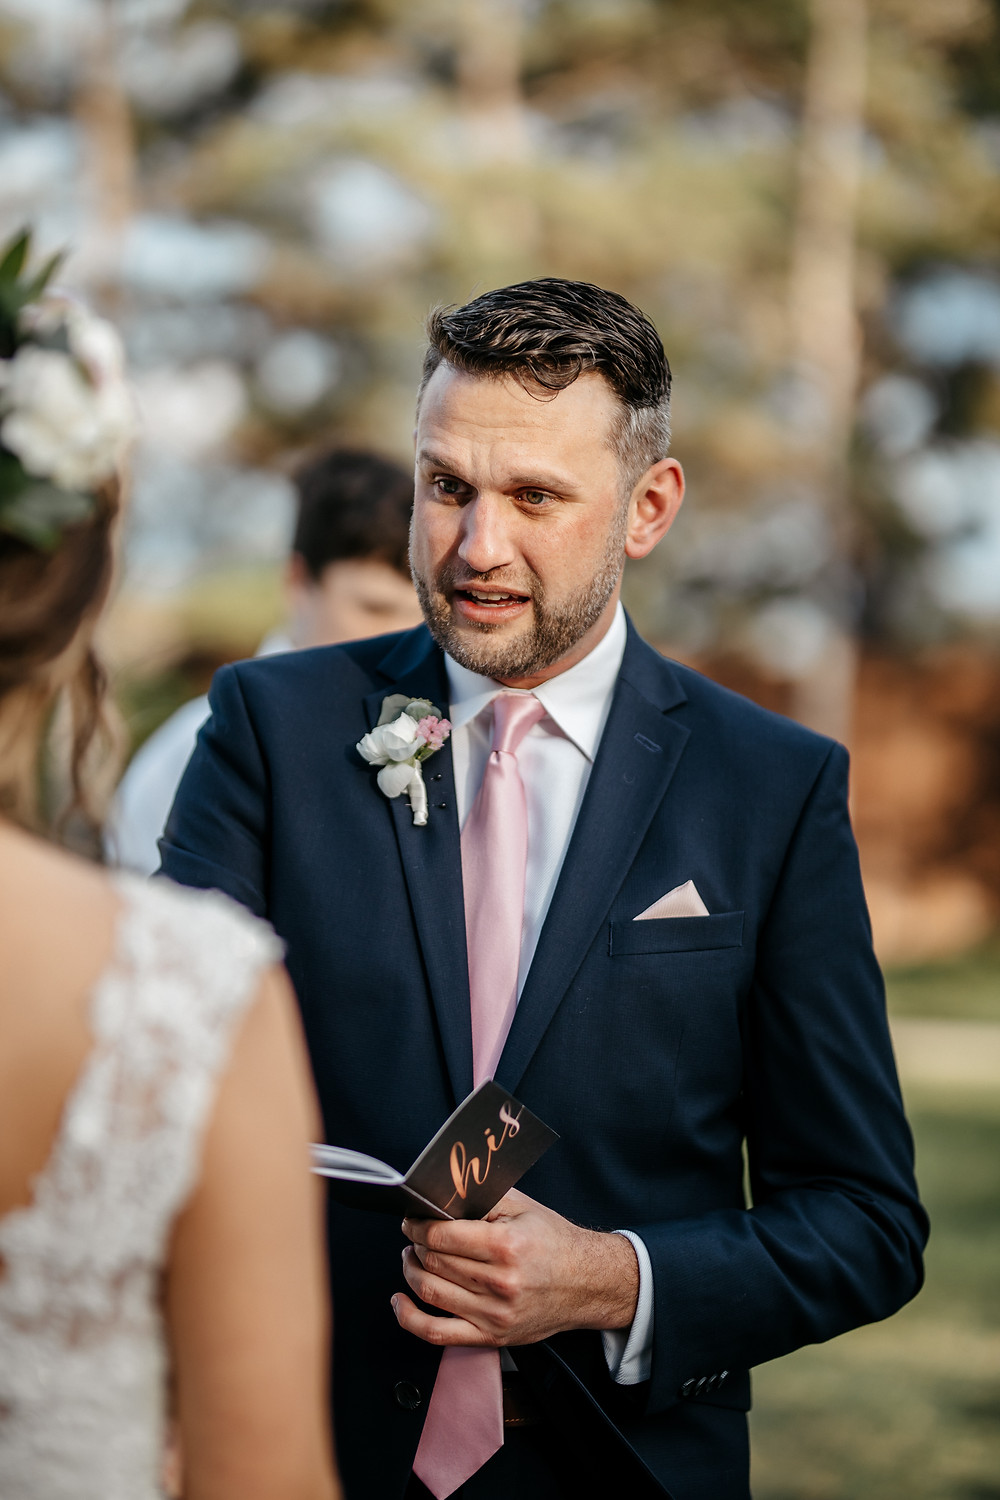 Groom shares personal wedding vows with bride in professional wedding photo by Joy Photo and Video in Texas